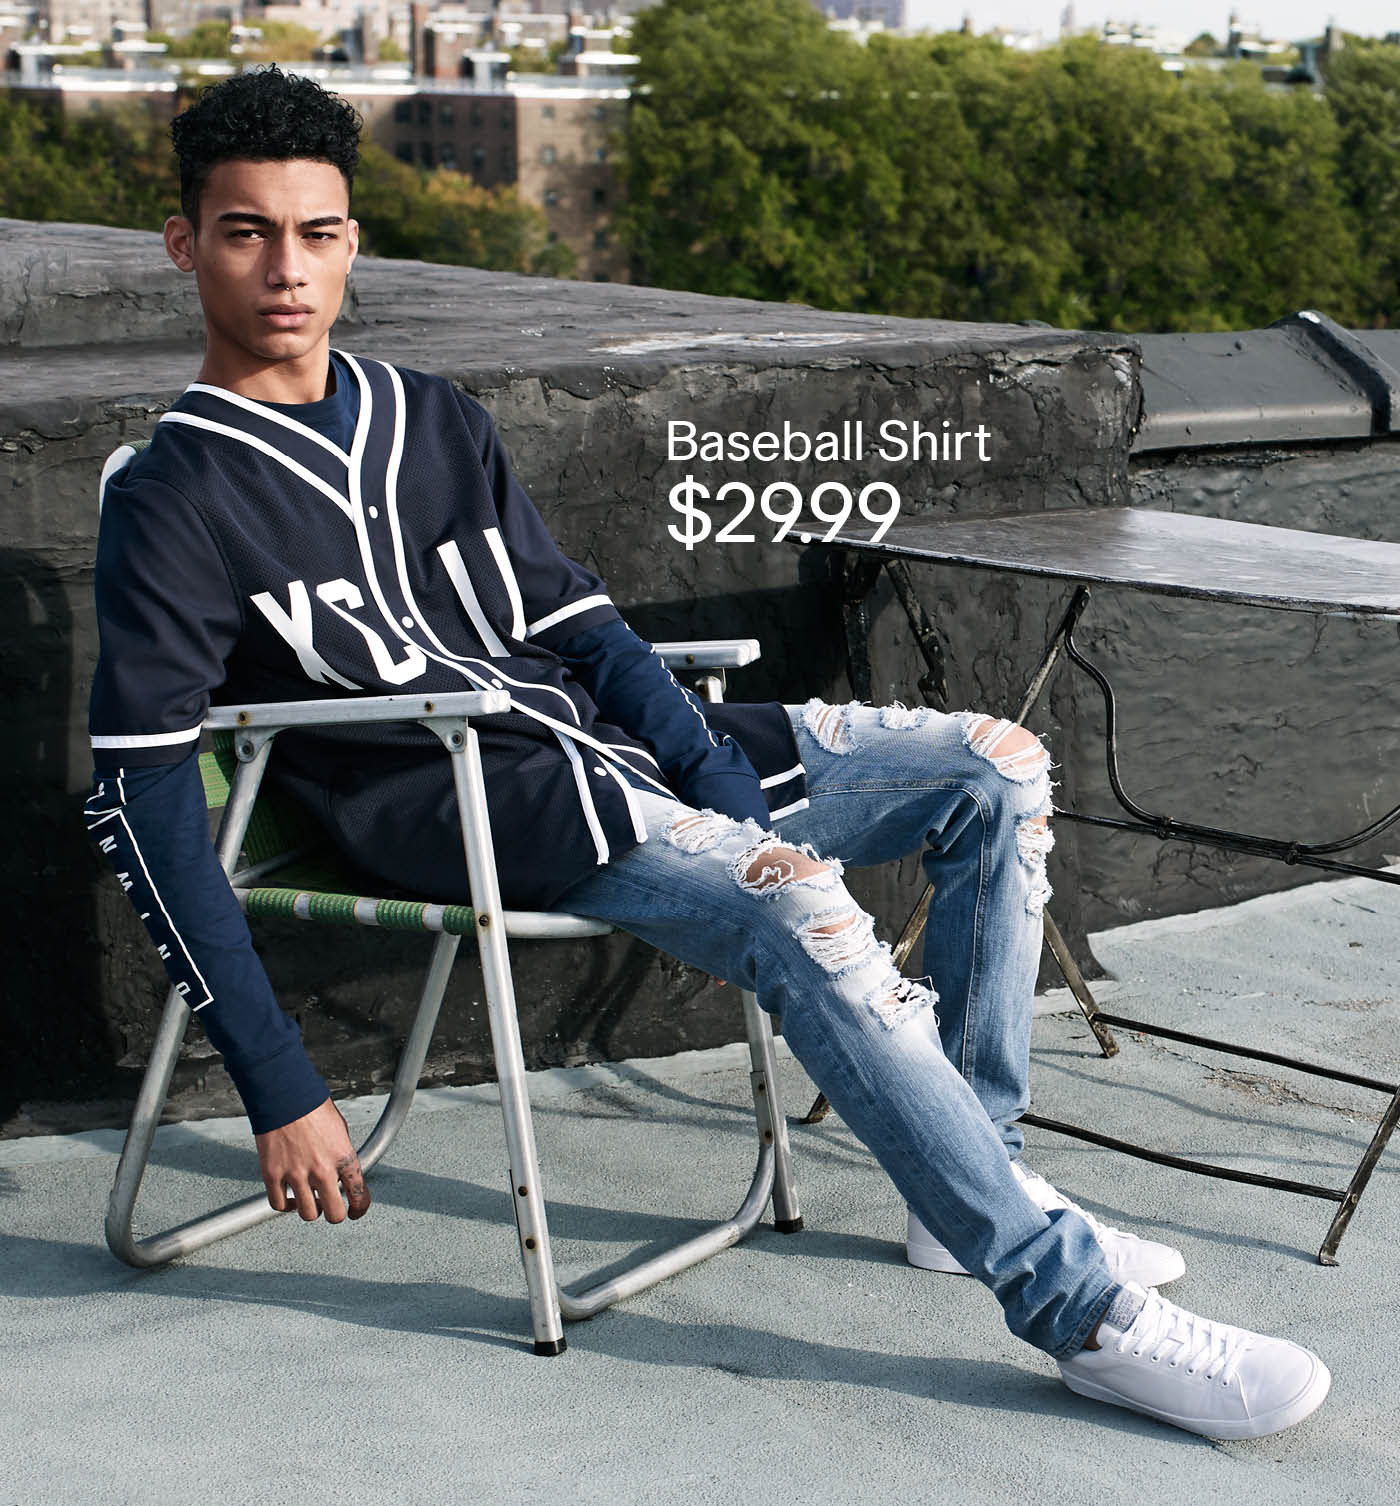 H&M Channels Sports Style for Latest Arrivals